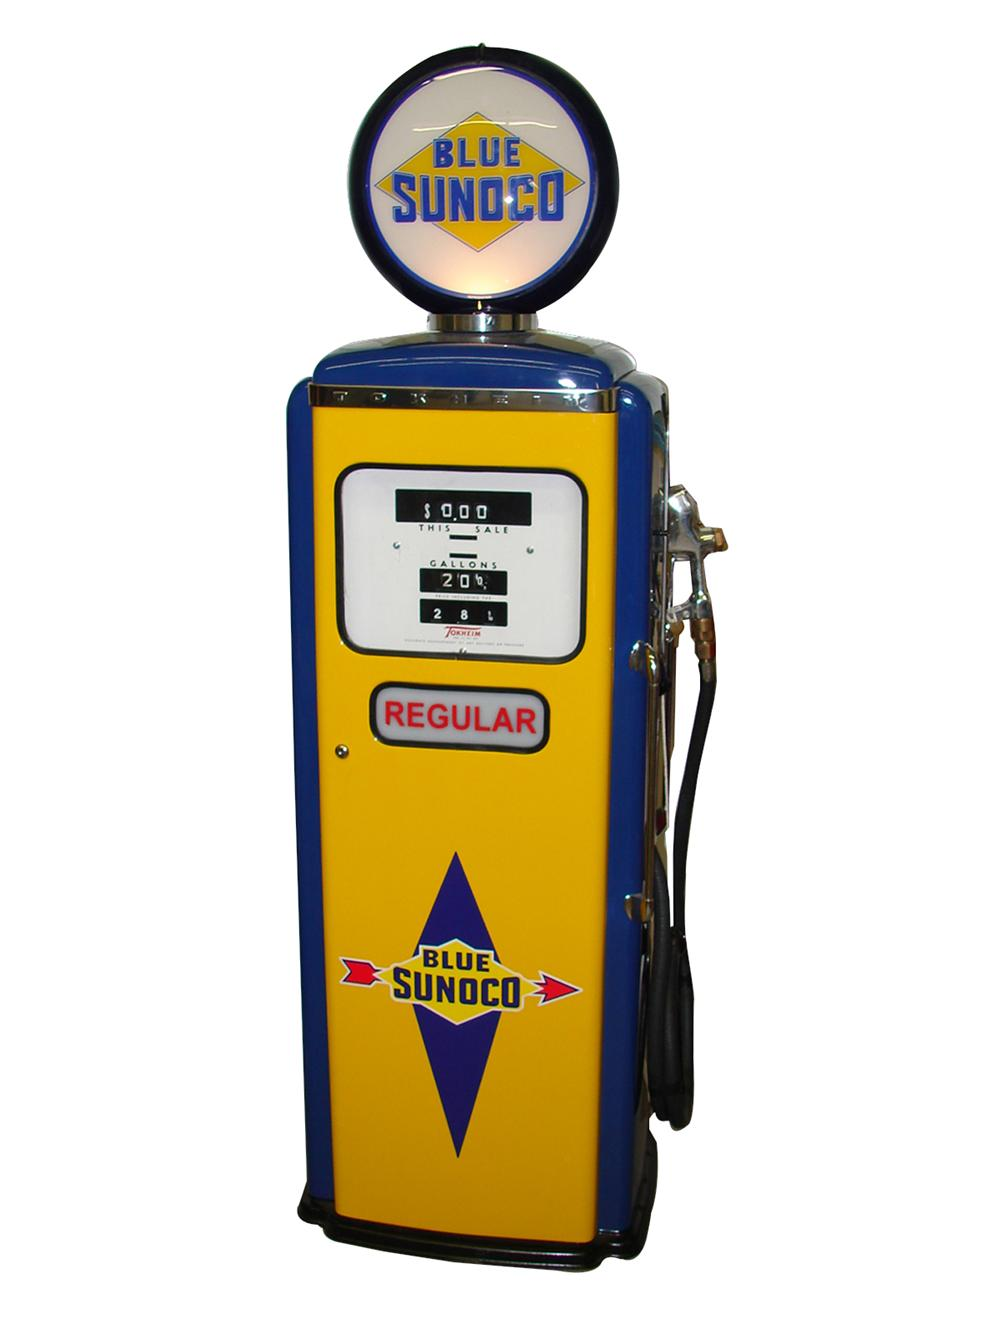 Wonderful 1959 Tokheim 39 Blue Sunoco restored service station gas pump. - Front 3/4 - 91522